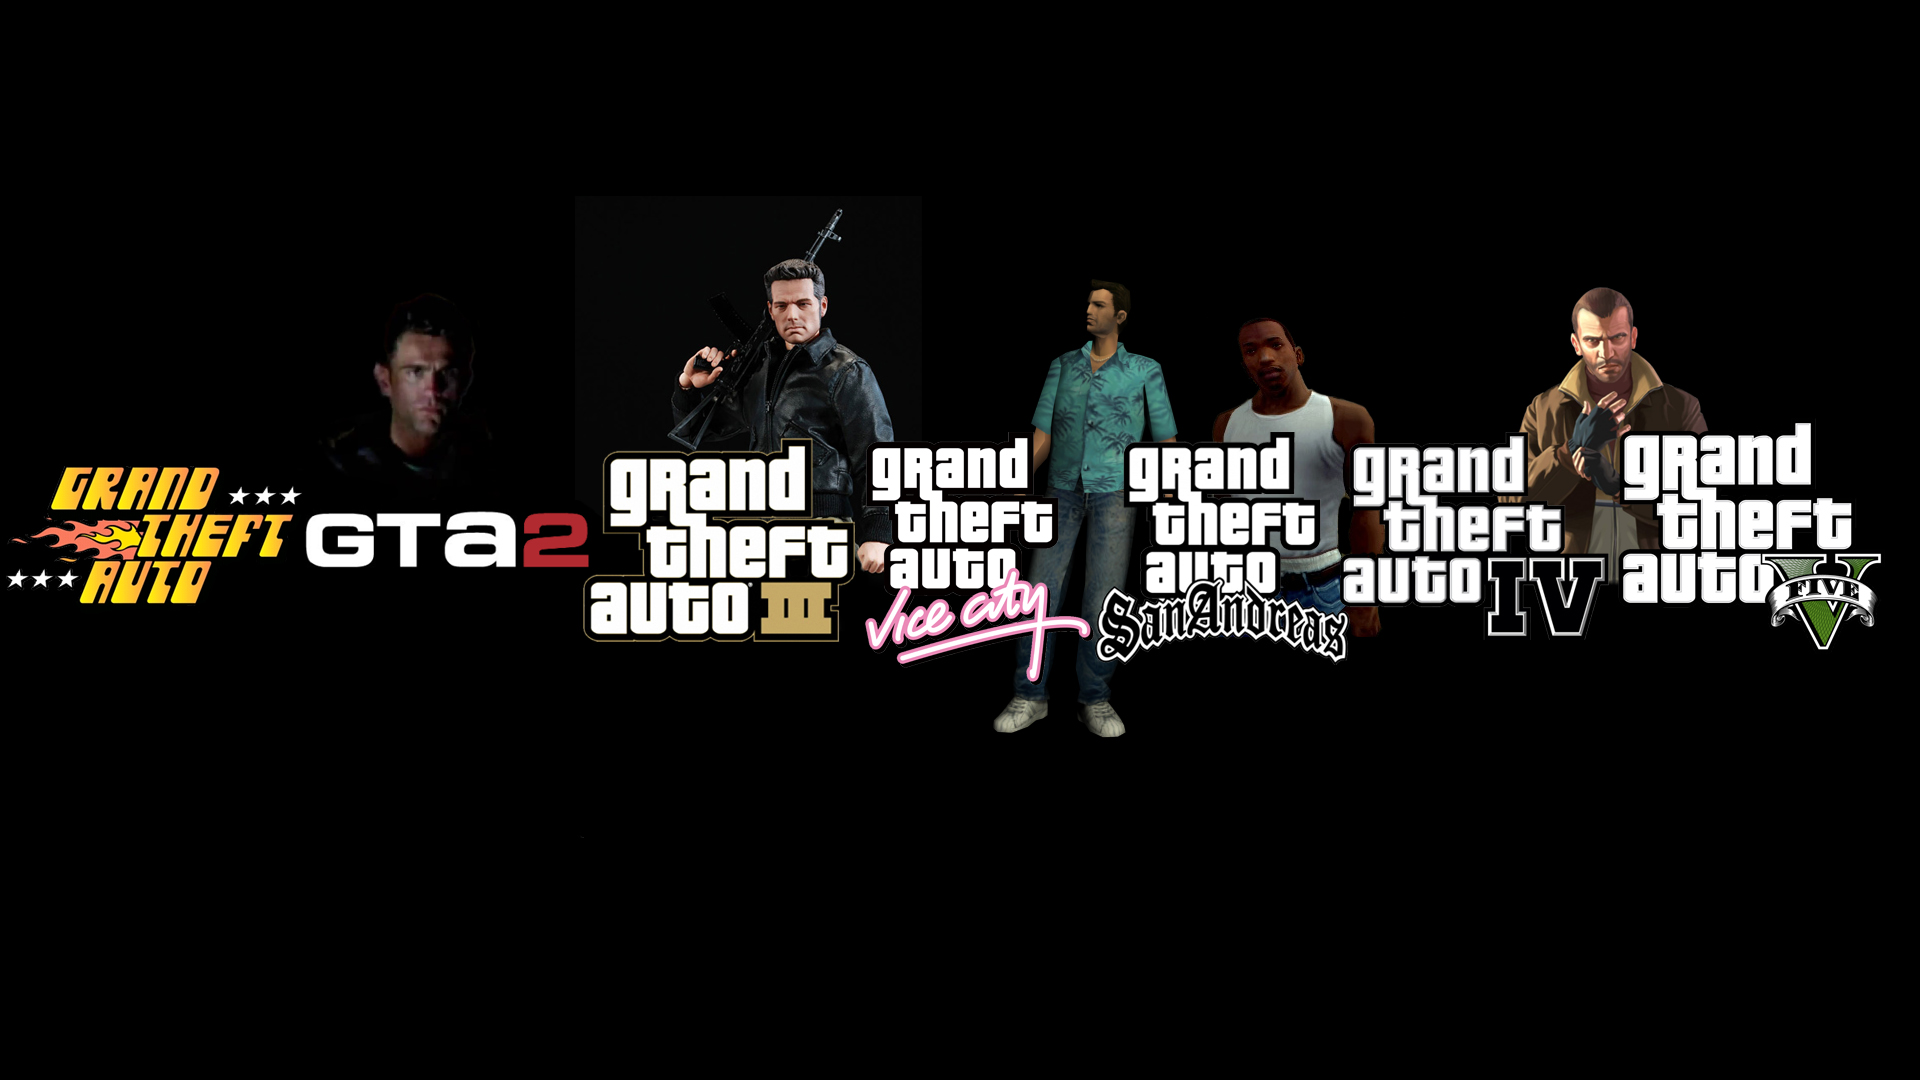 grand-theft-auto-v-pictures.jpg